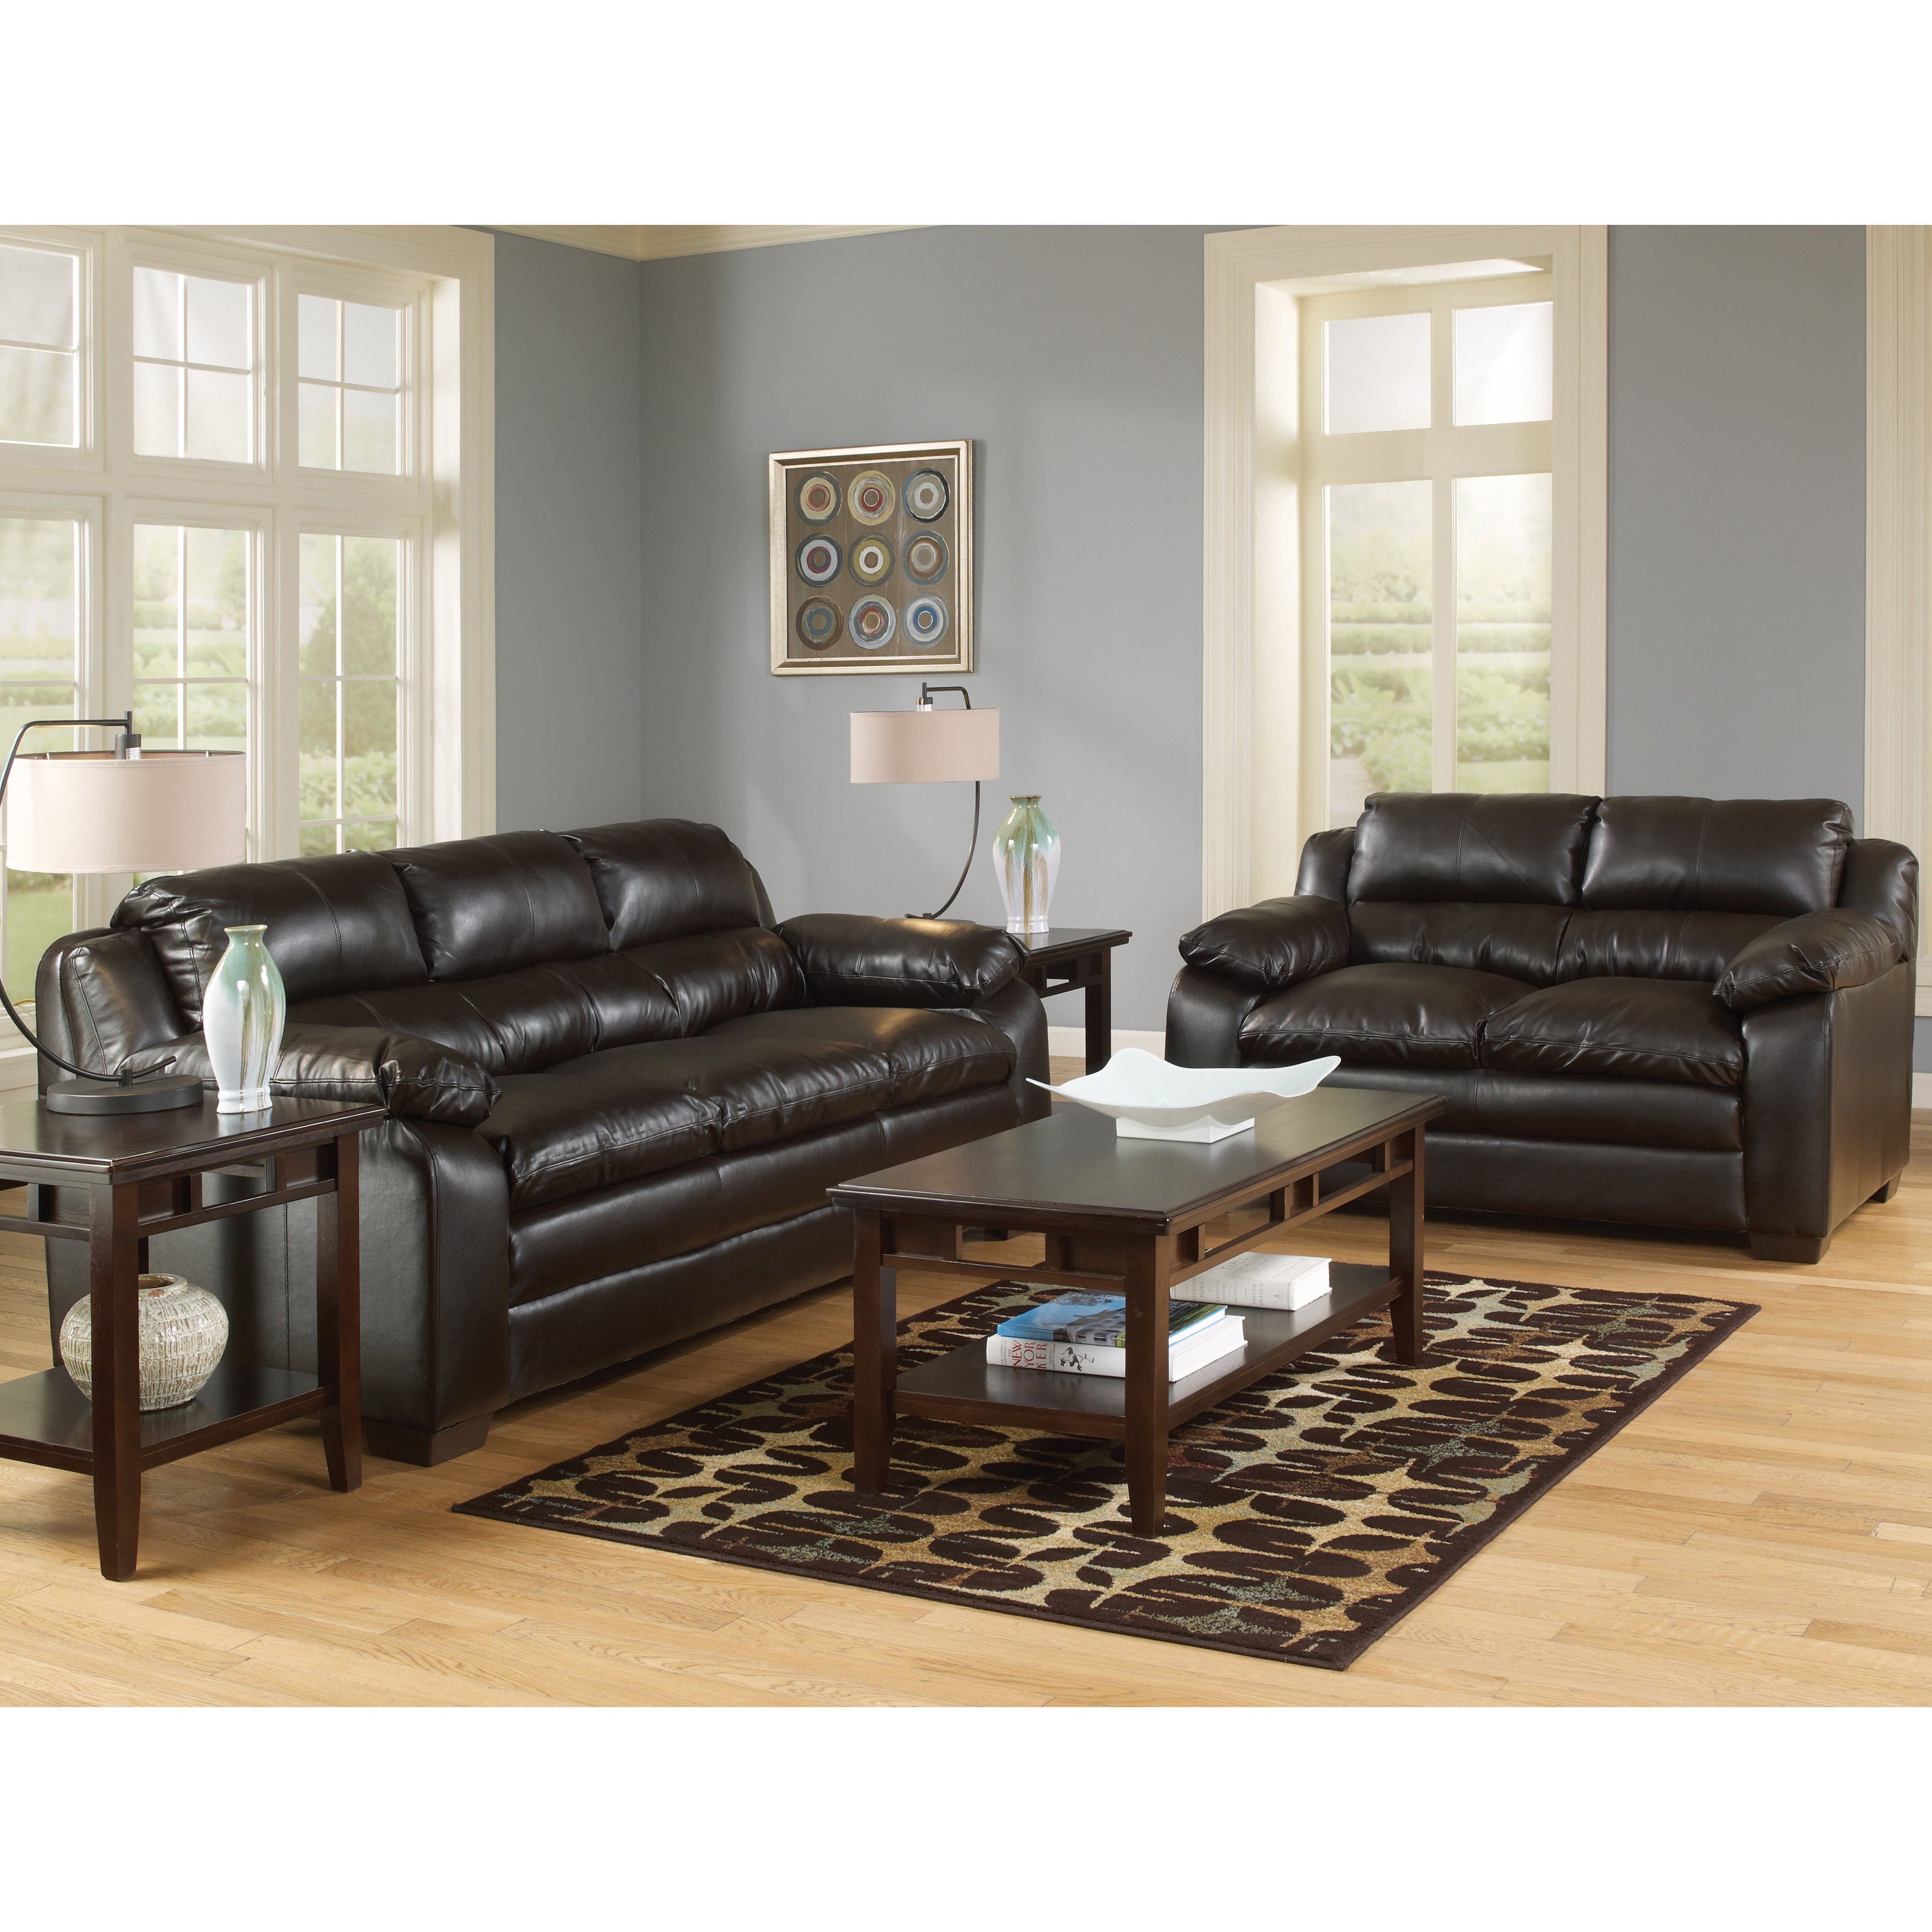 Shop Art Van Maddox Espresso Sofa And Loveseat Set – Free Shipping In Maddox Oversized Sofa Chairs (View 9 of 25)